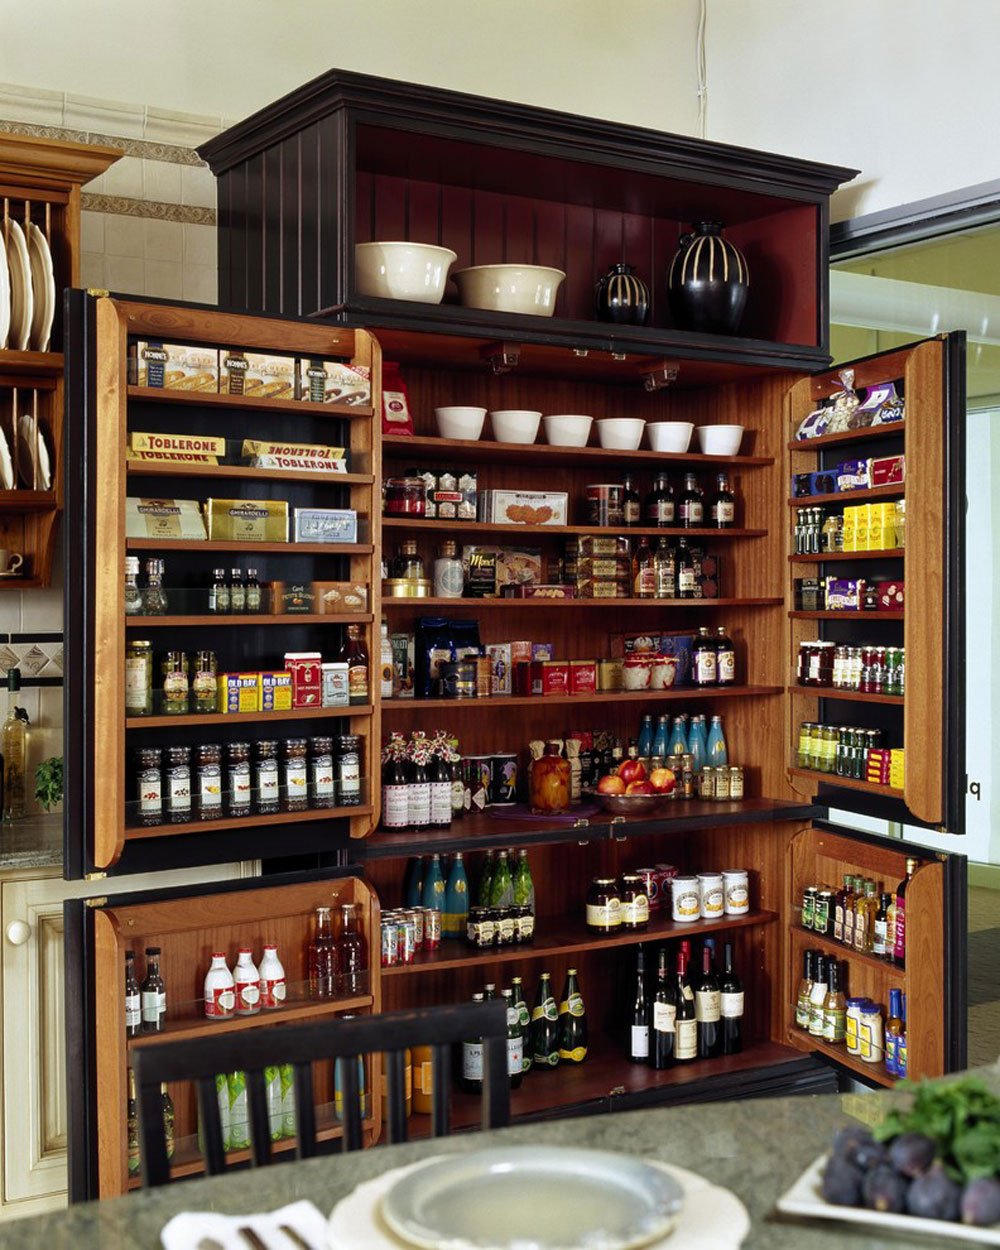 Showroom-Display-by-Venegas-and-Company Pantry cabinet ideas: shelf and storage ideas for your kitchen